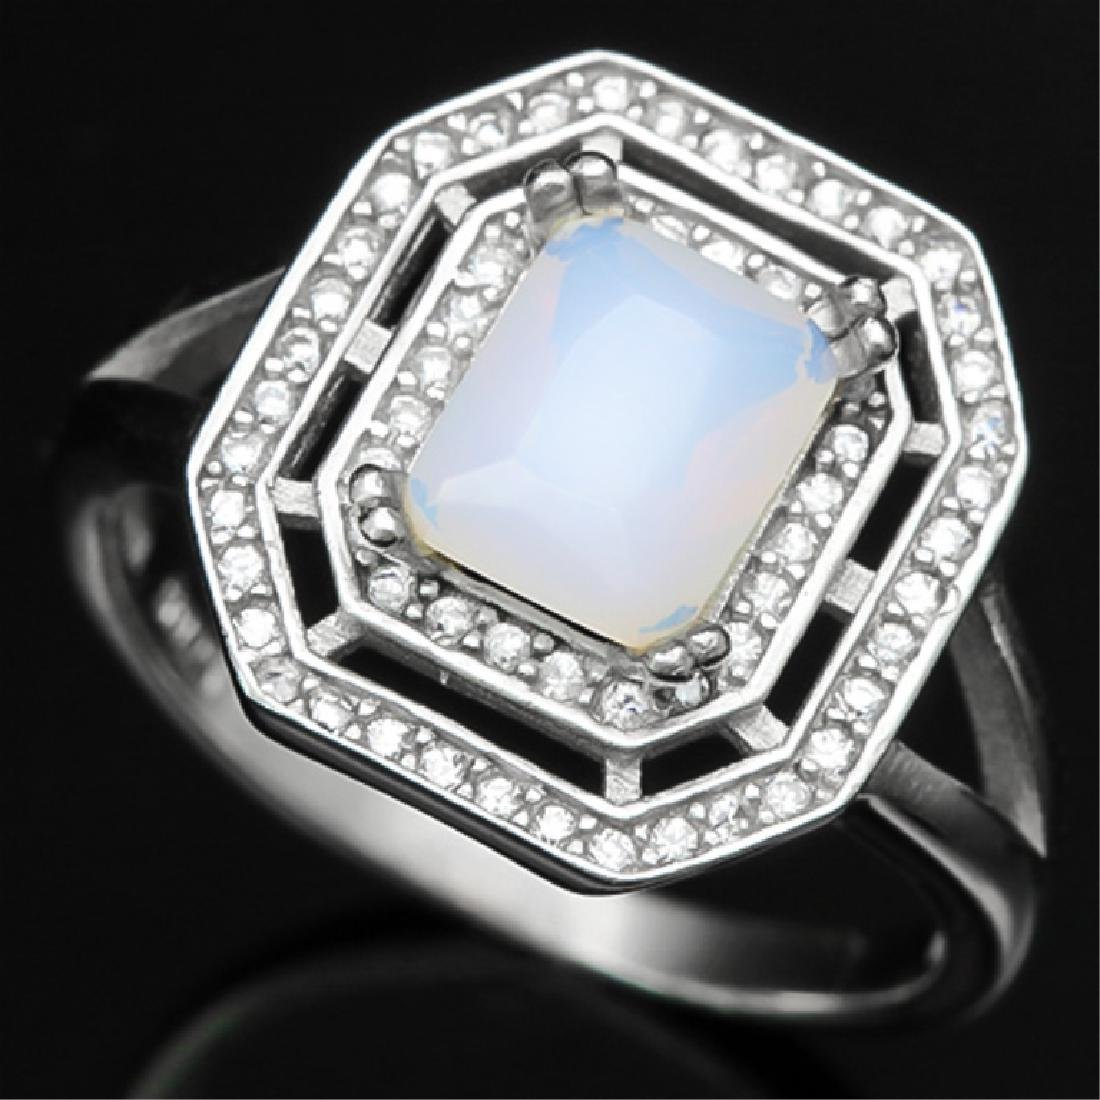 1CT SMASHING ART DECO FIRE OPAL STERLING RING